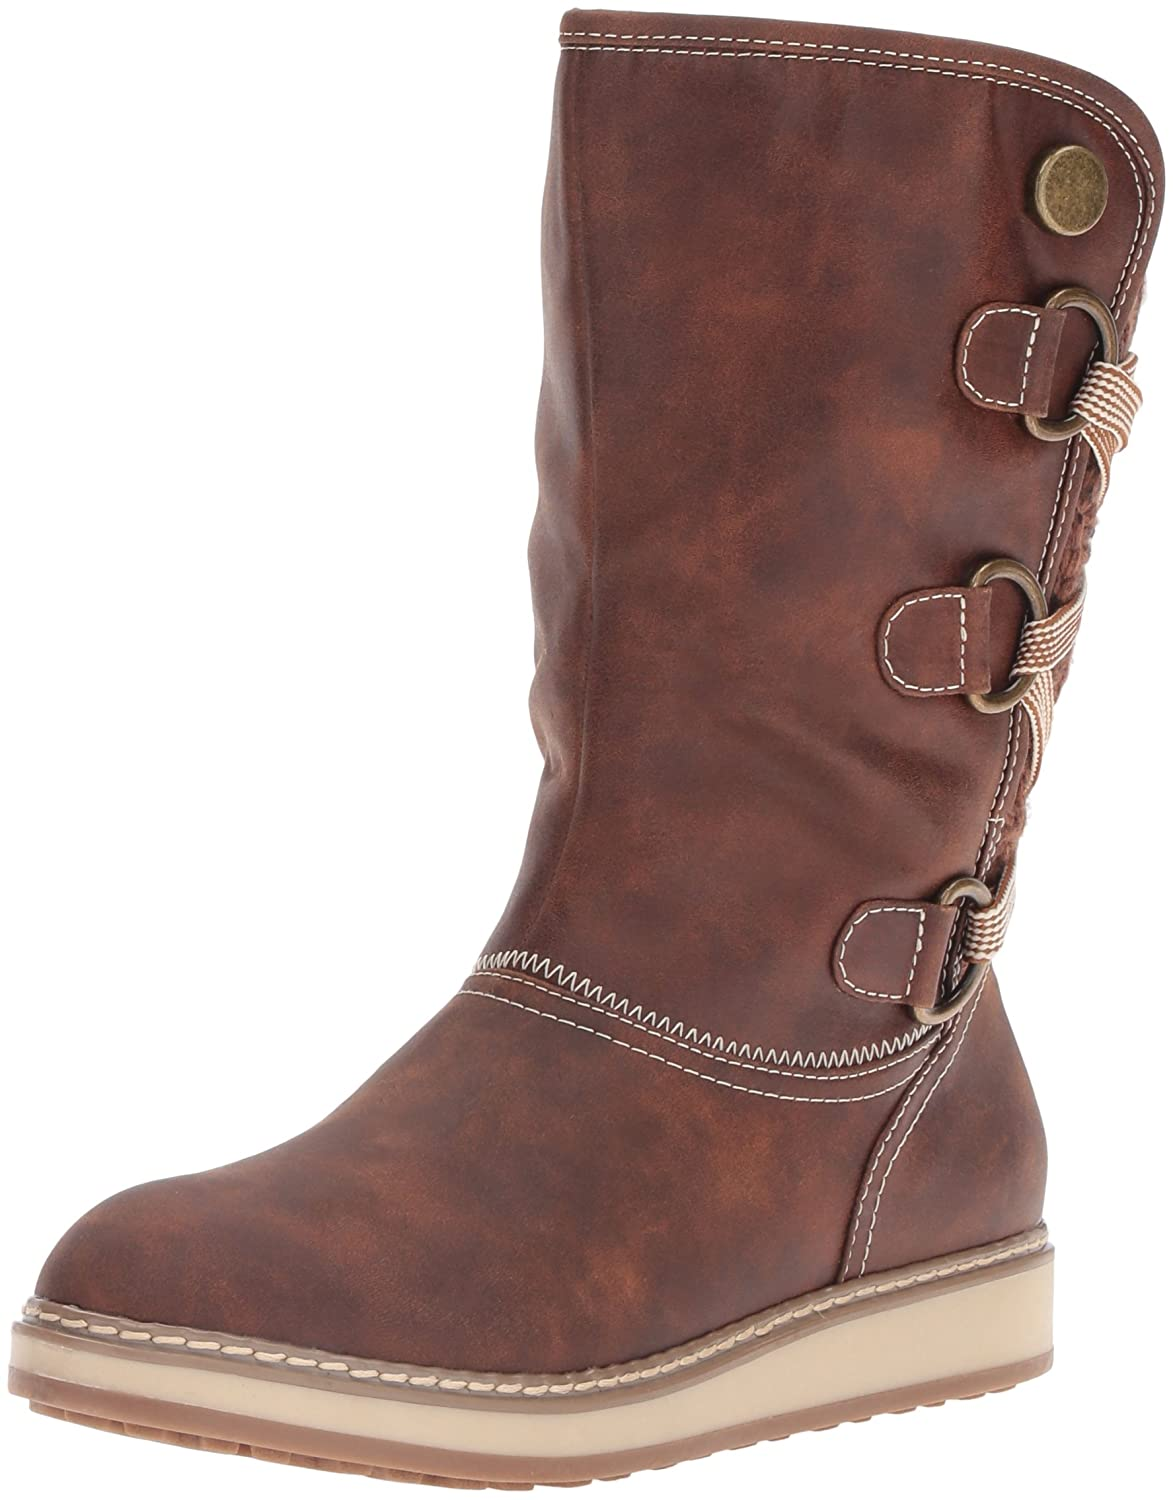 WHITE MOUNTAIN Women's Tivia Snow Boot B01DS40NC4 9.5 B(M) US|Cognac